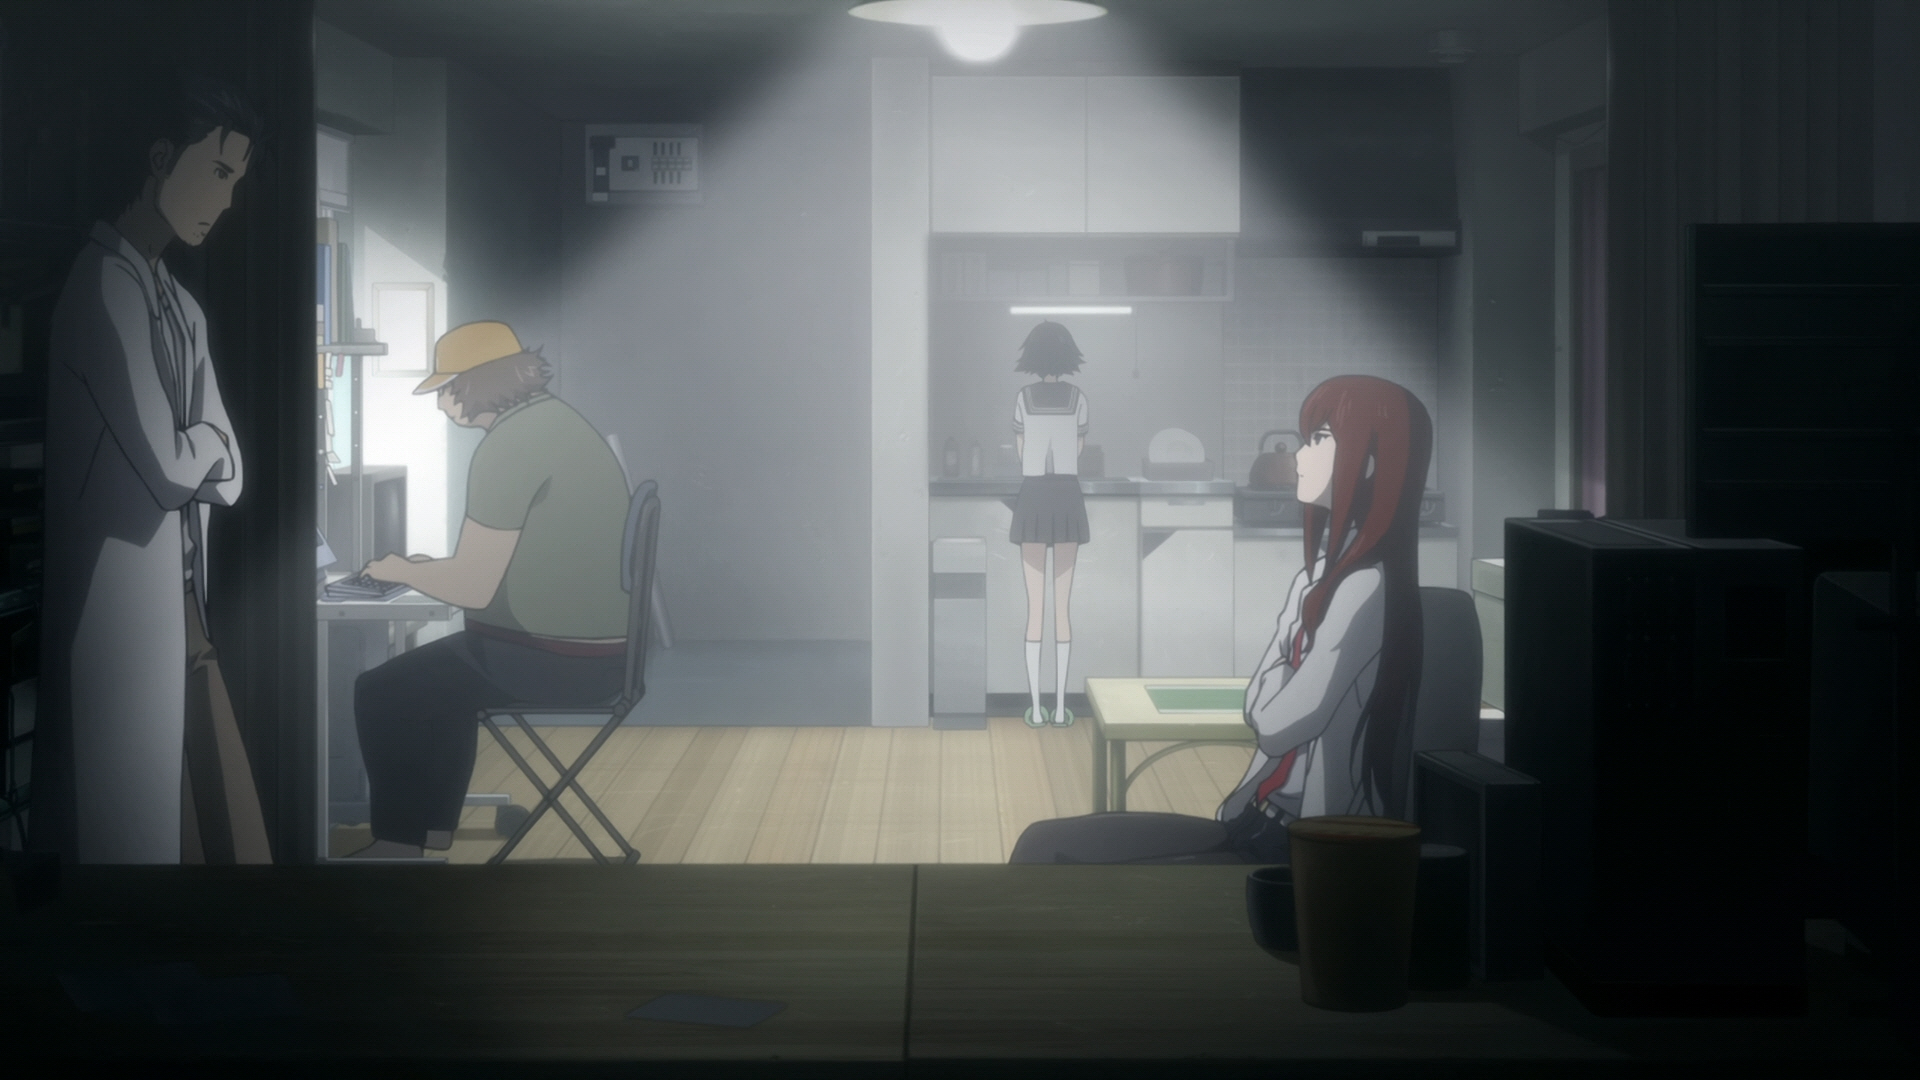 Steins Gate Episode 9 Chaos Theory Homeostasis II 09